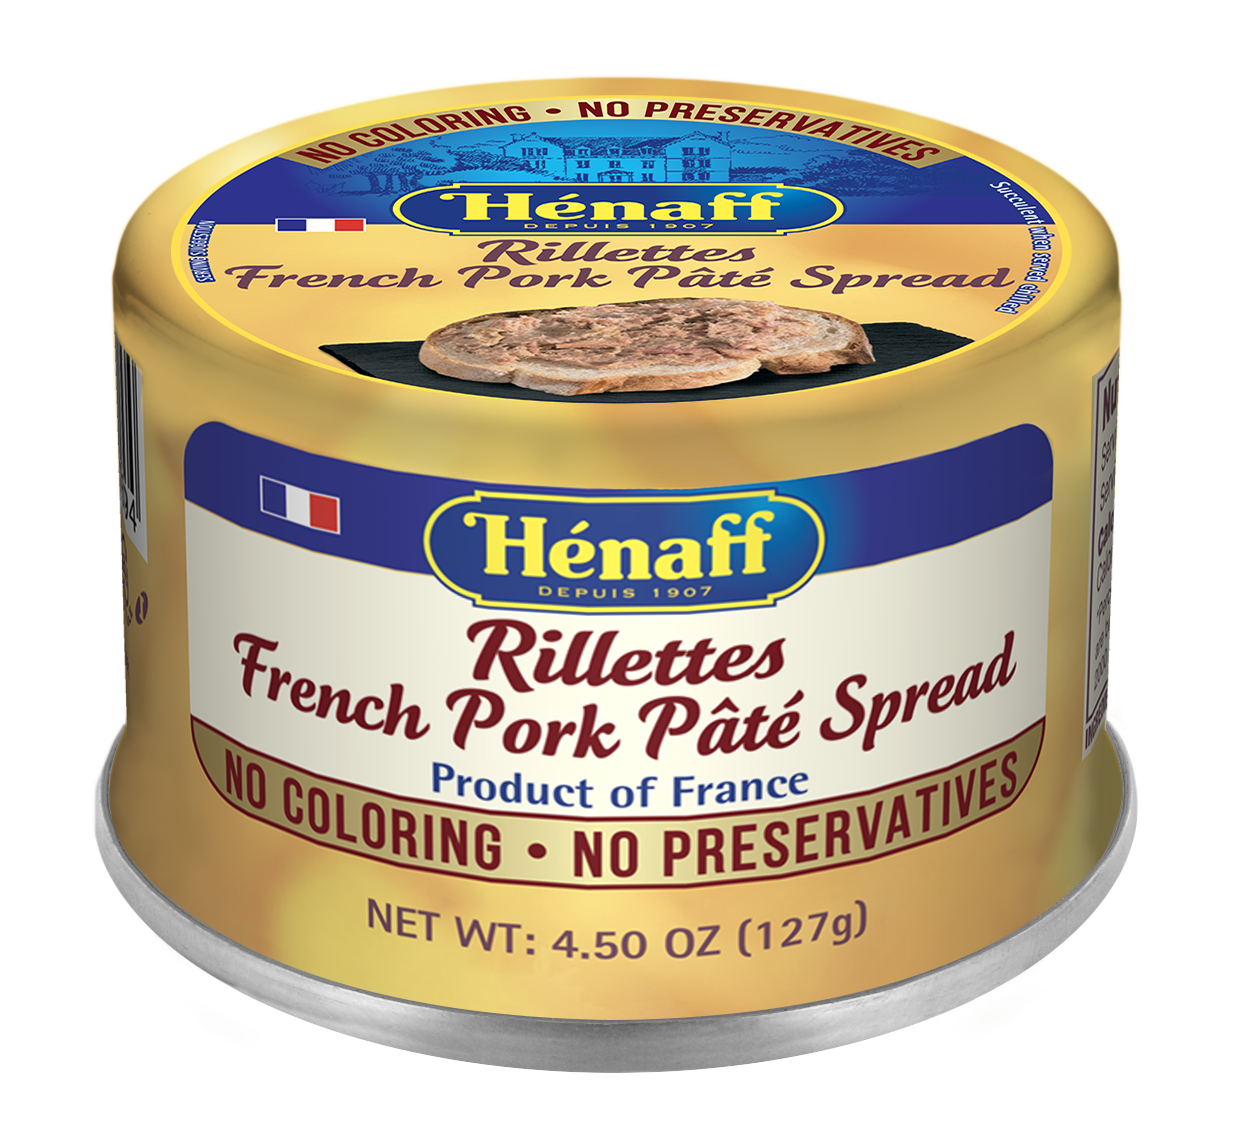 Rillettes French Pork Pâté Spread